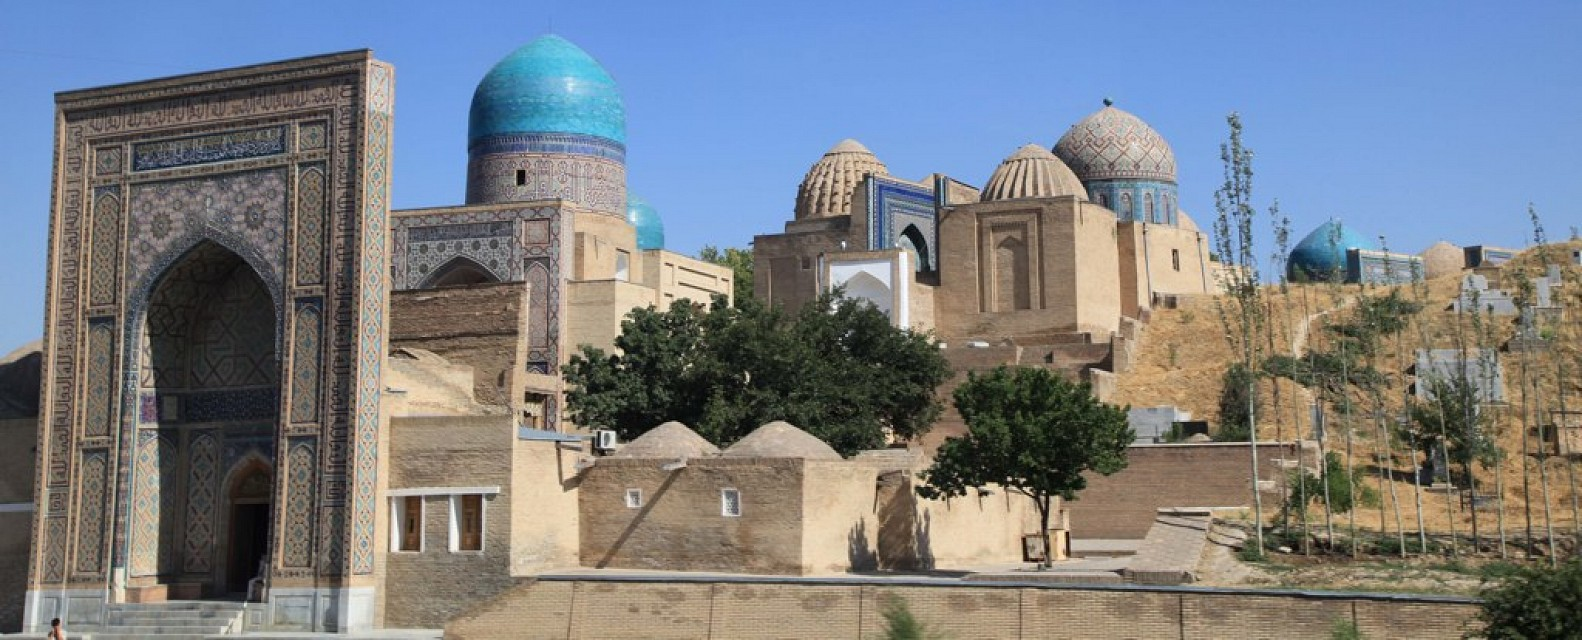 Tombs on the outskirts of Samarkand, Uzbekistan - Samarkand